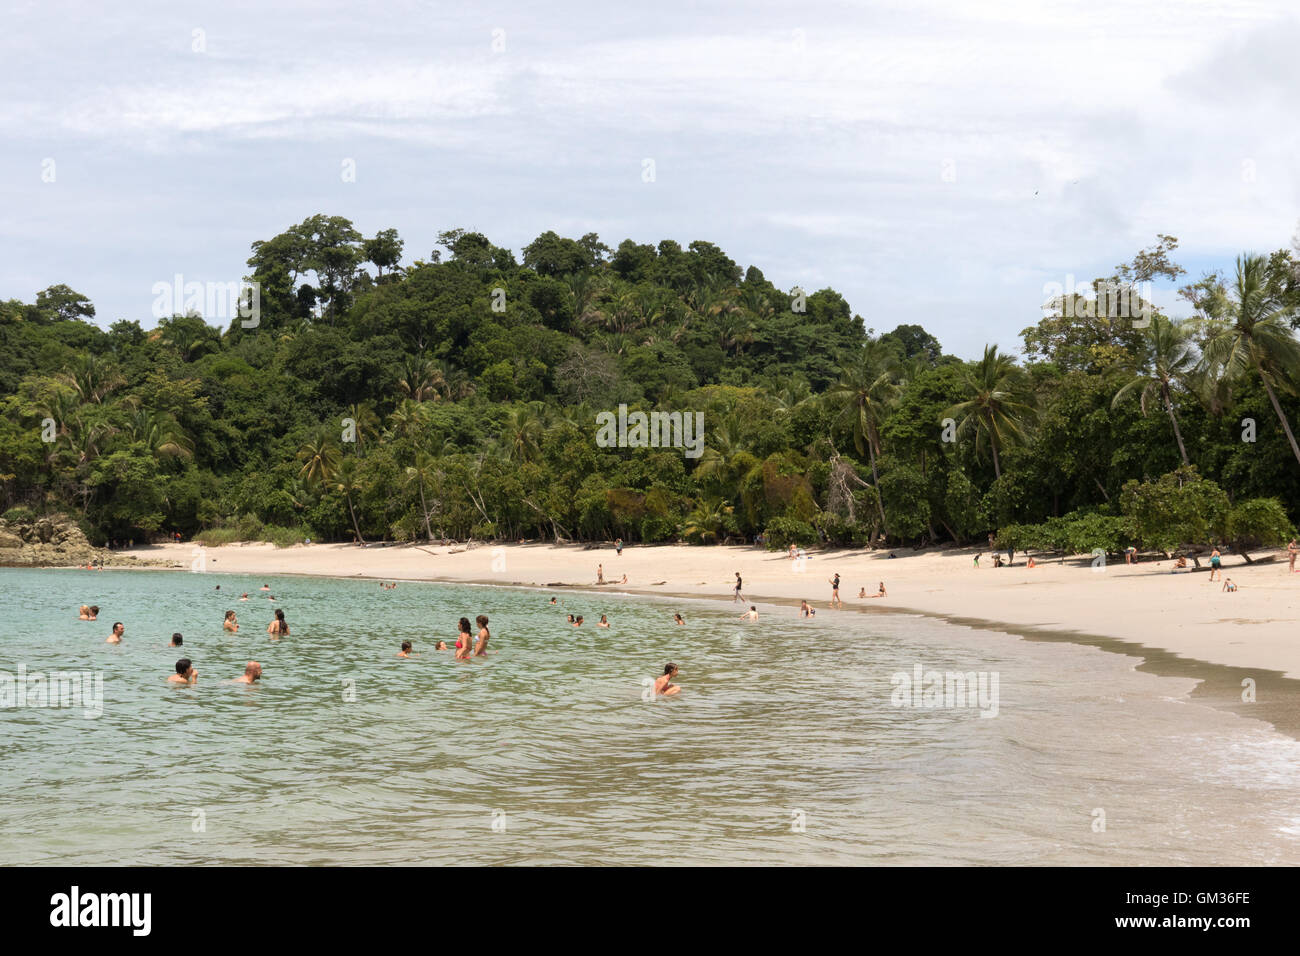 Tourists bathing in the Pacific Ocean, Manuel Antonio national park beach, pacific coast, Costa Rica, Central America Stock Photo